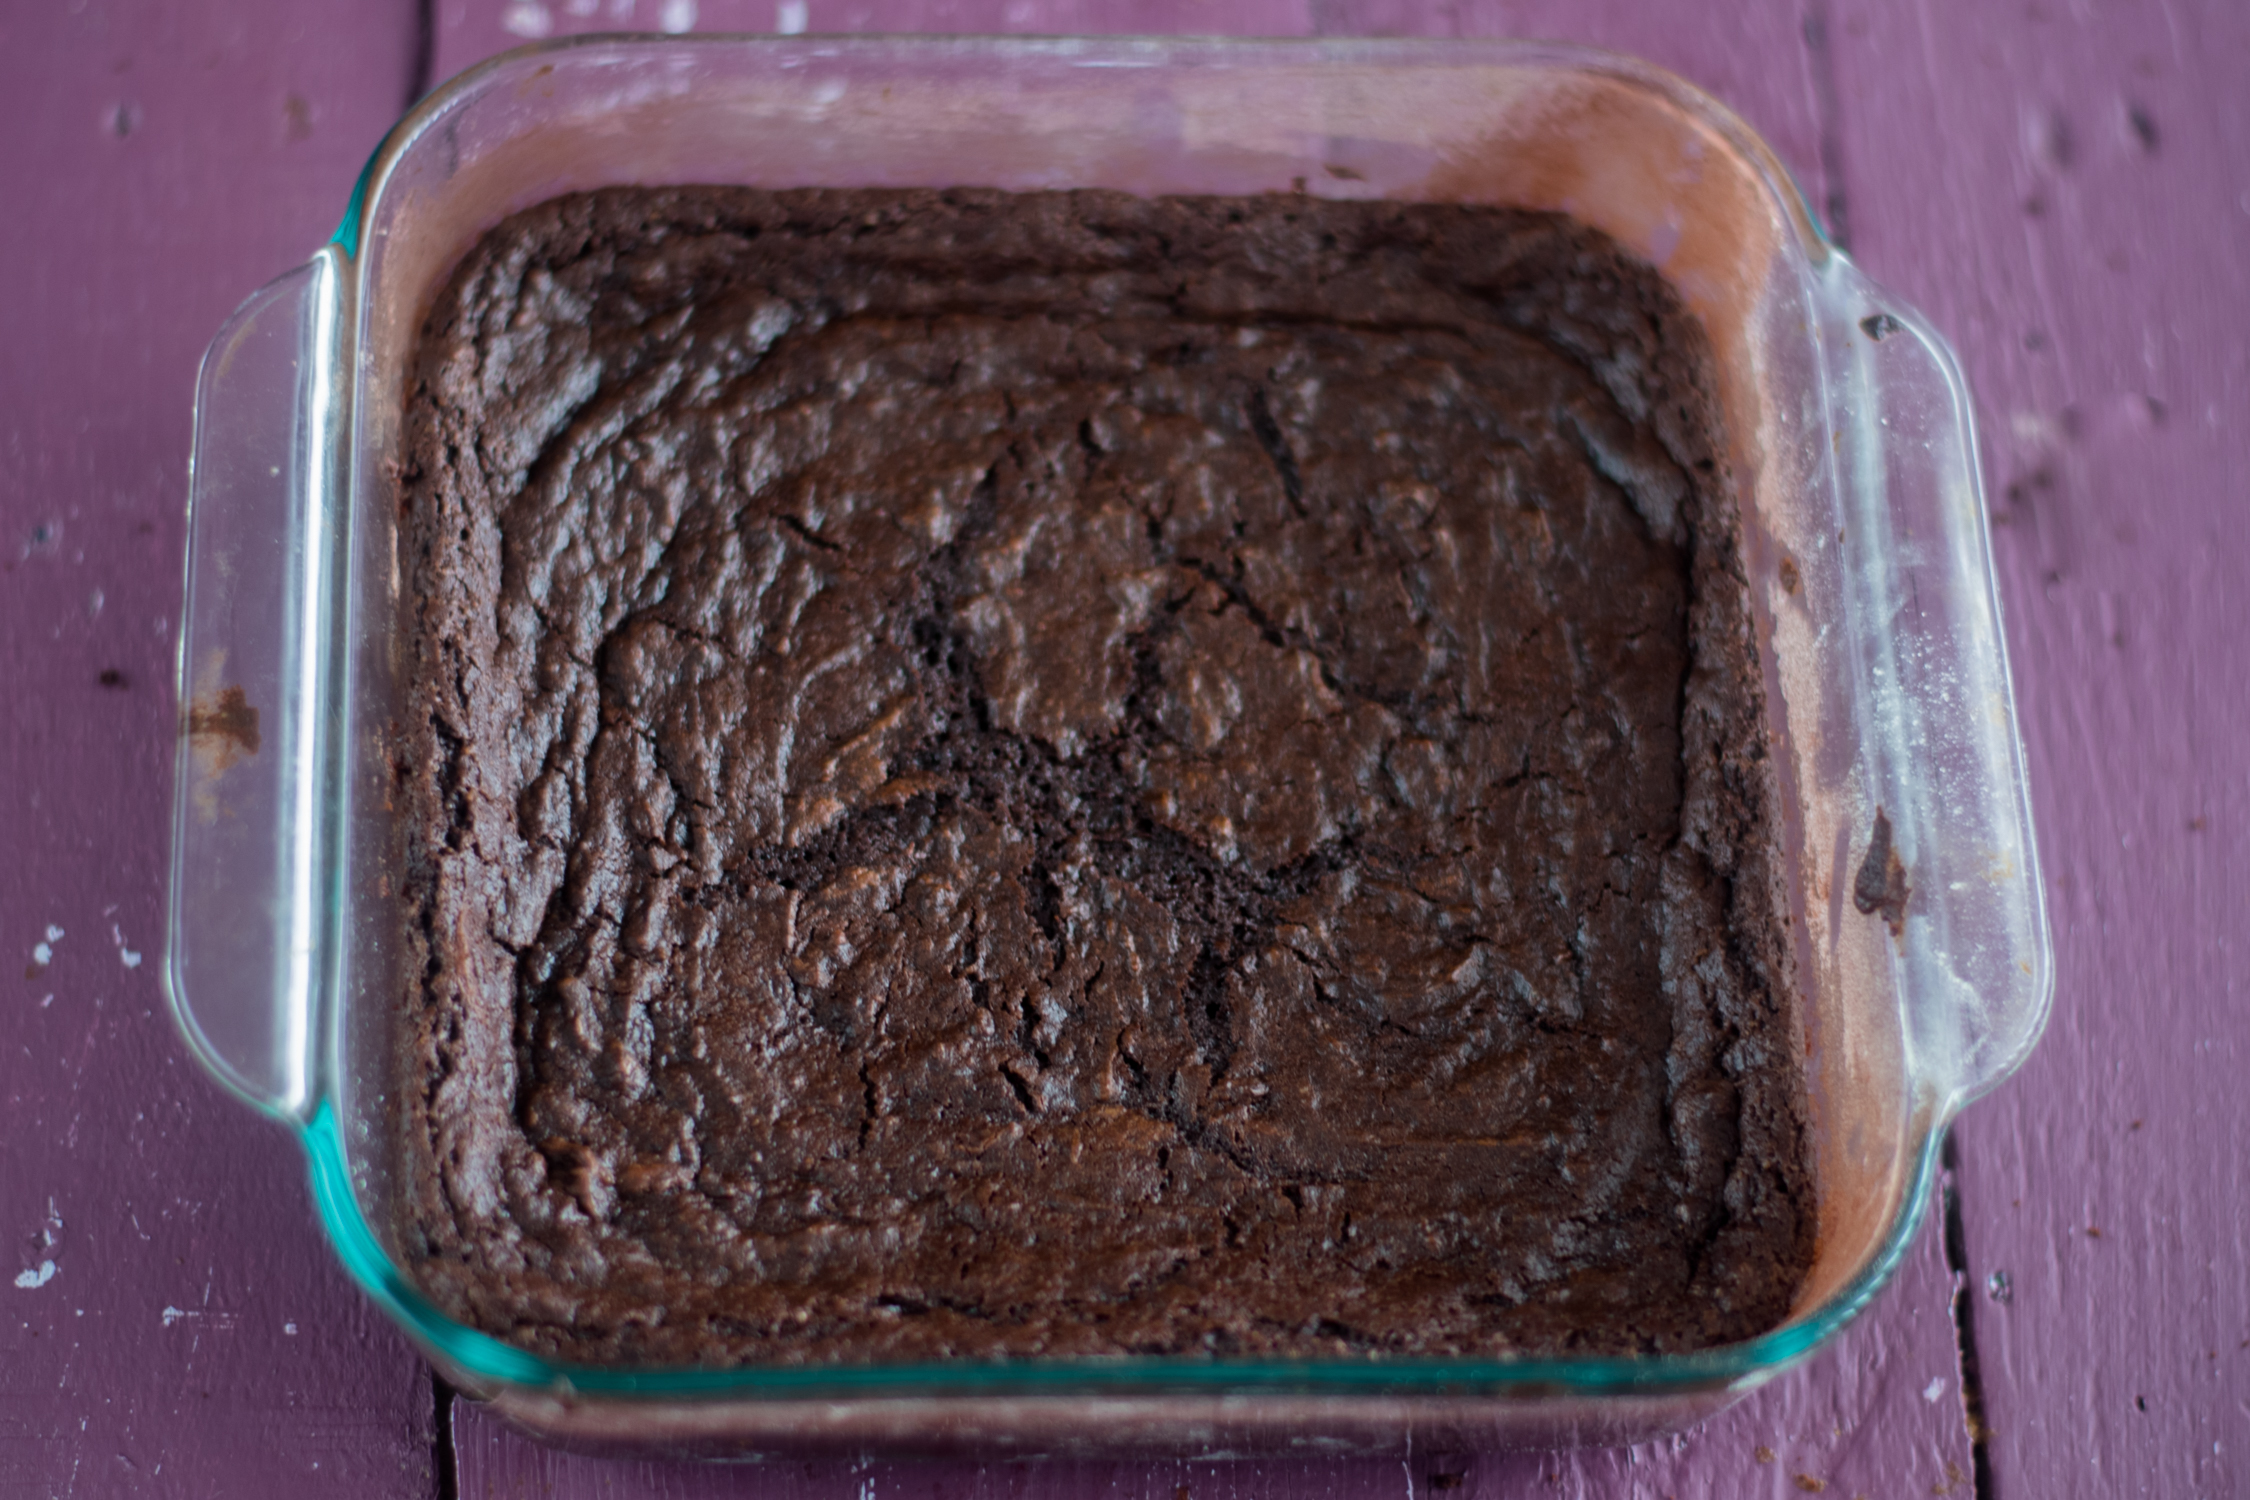 Vegan brownies made with red wine. #vegan #dessert #brownies #recipe #wine